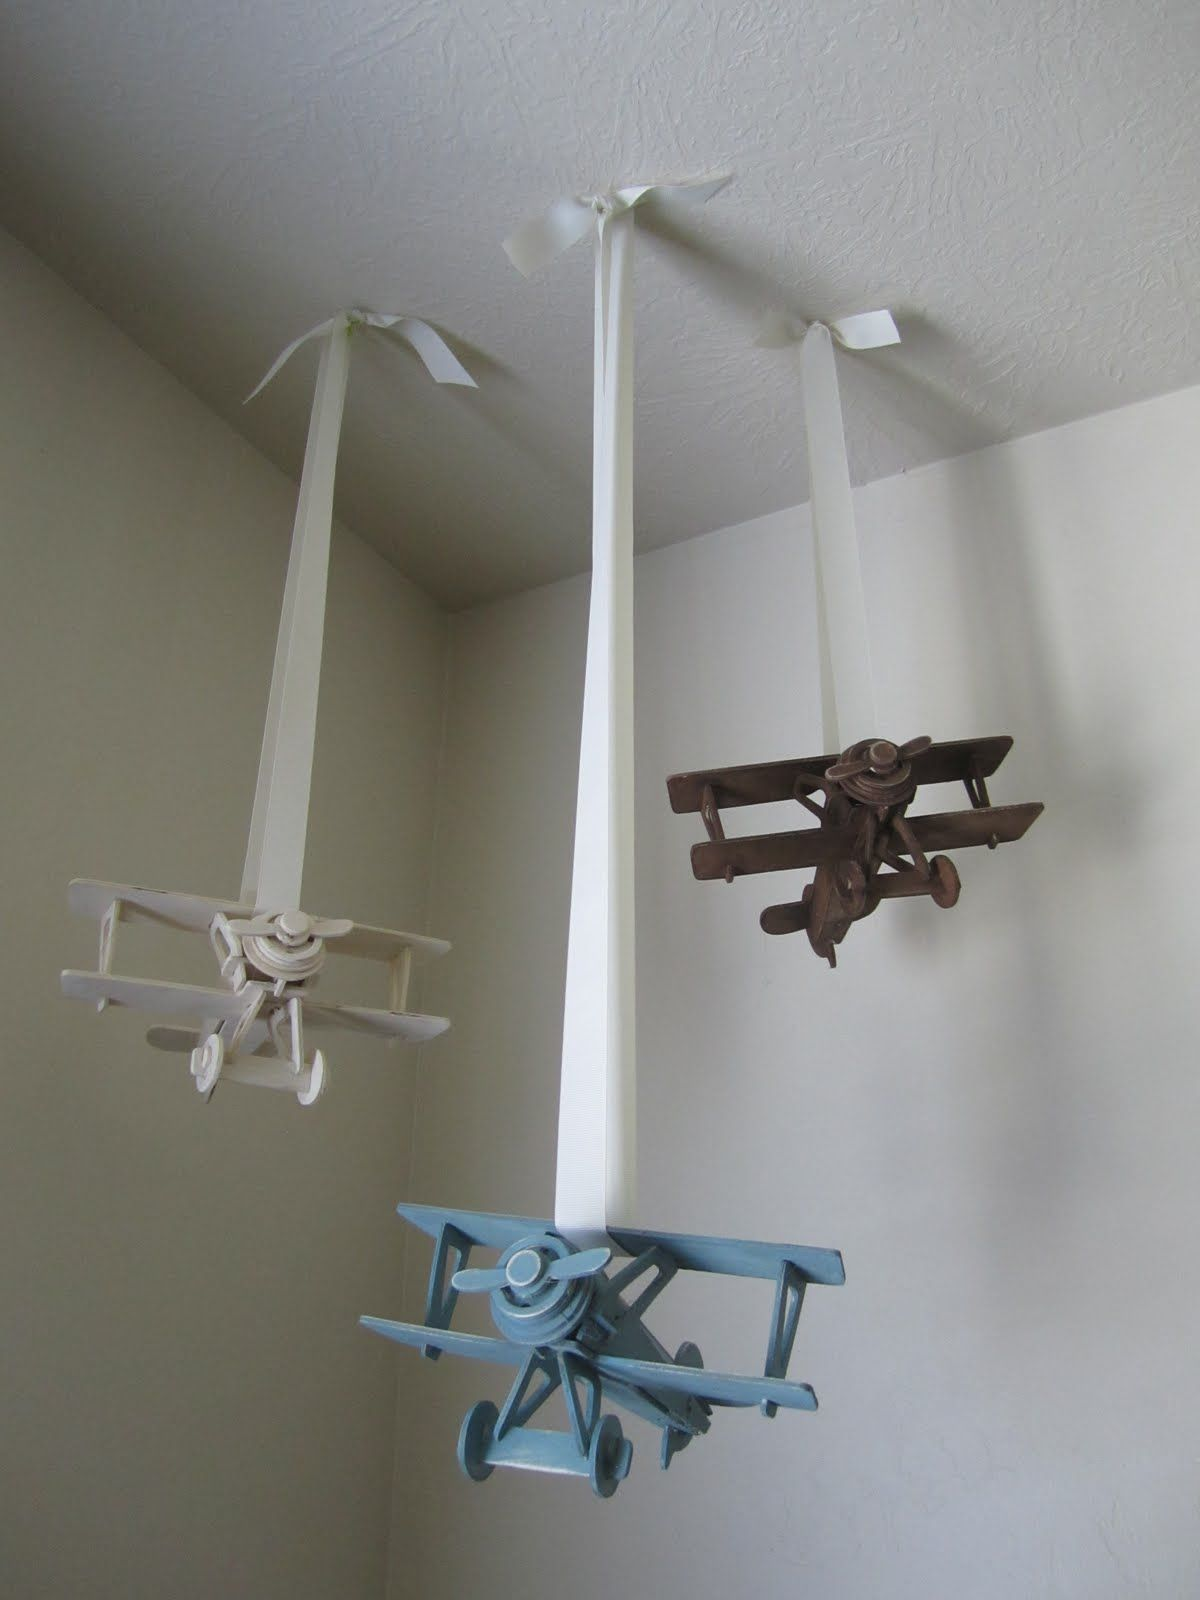 Nursery Ceiling Fans Cute Airplanes For A Little Boys Room Bought Each